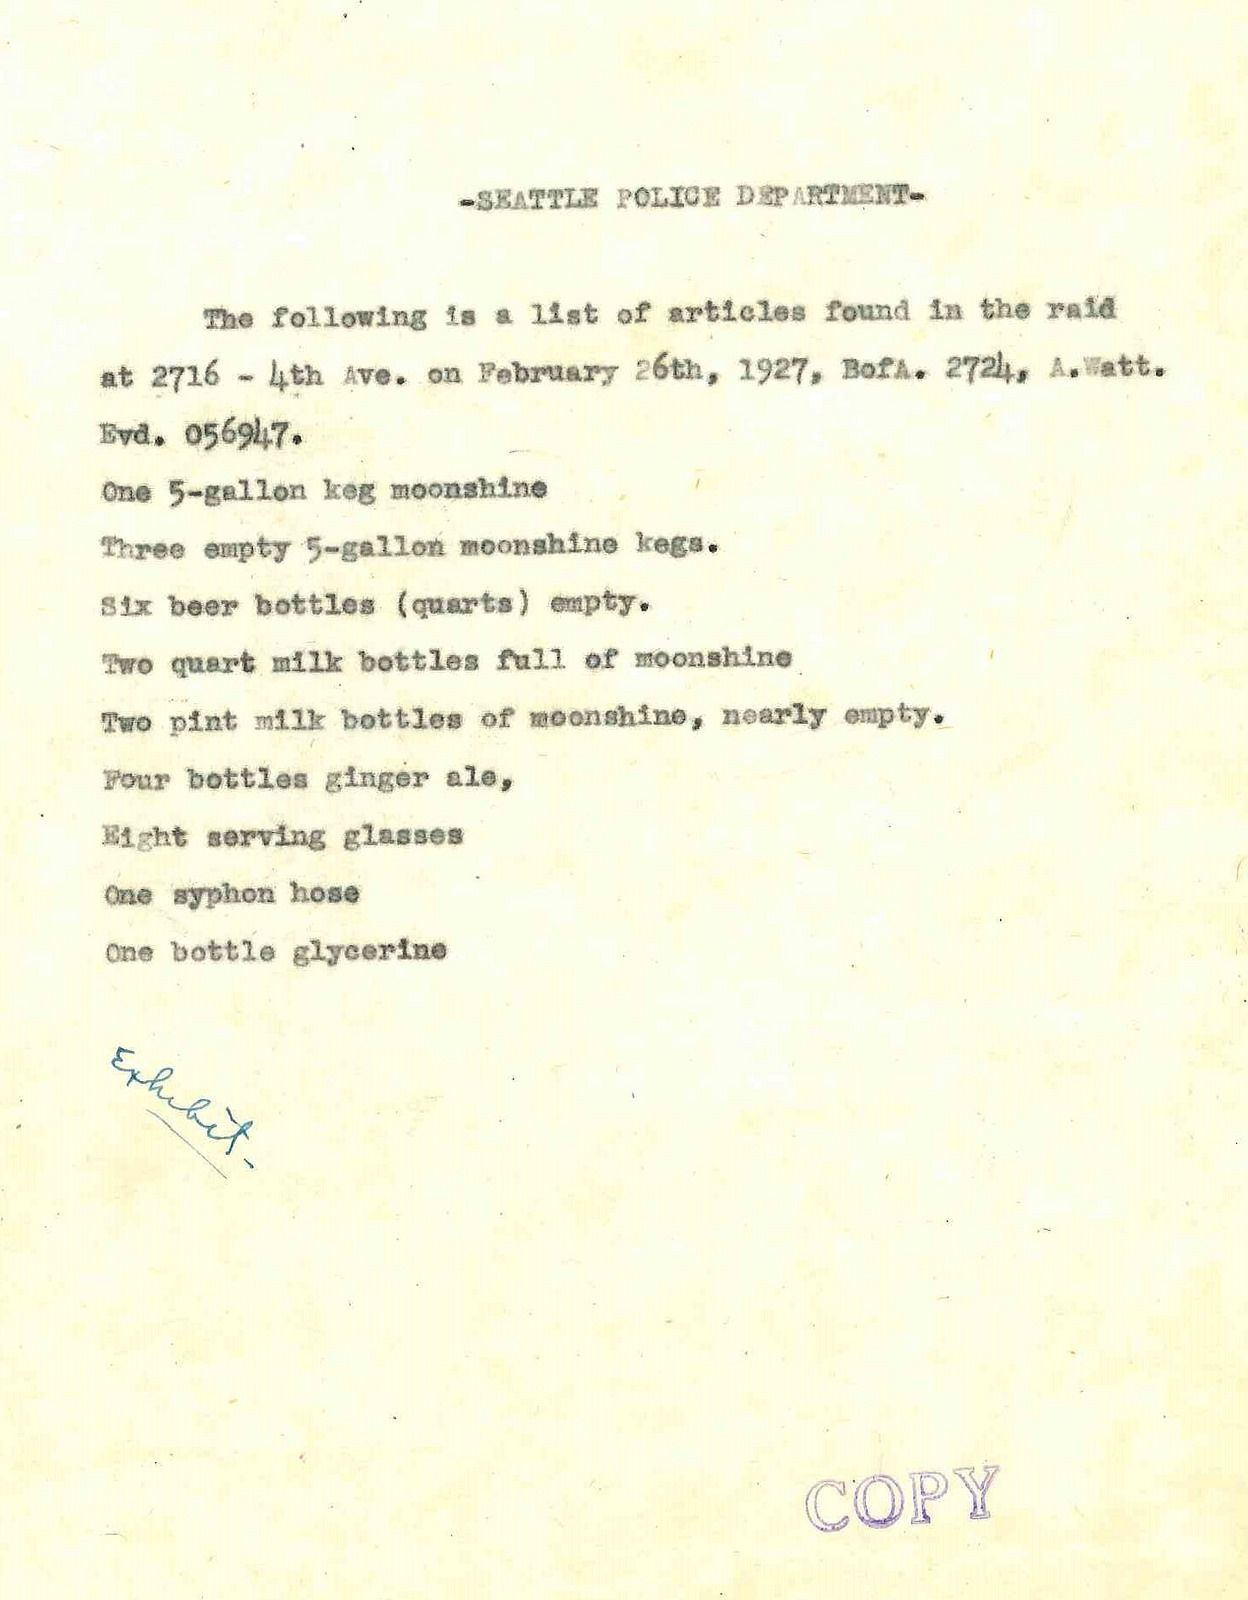 Inventory From Prohibition Raid 1927 Beer Bottle